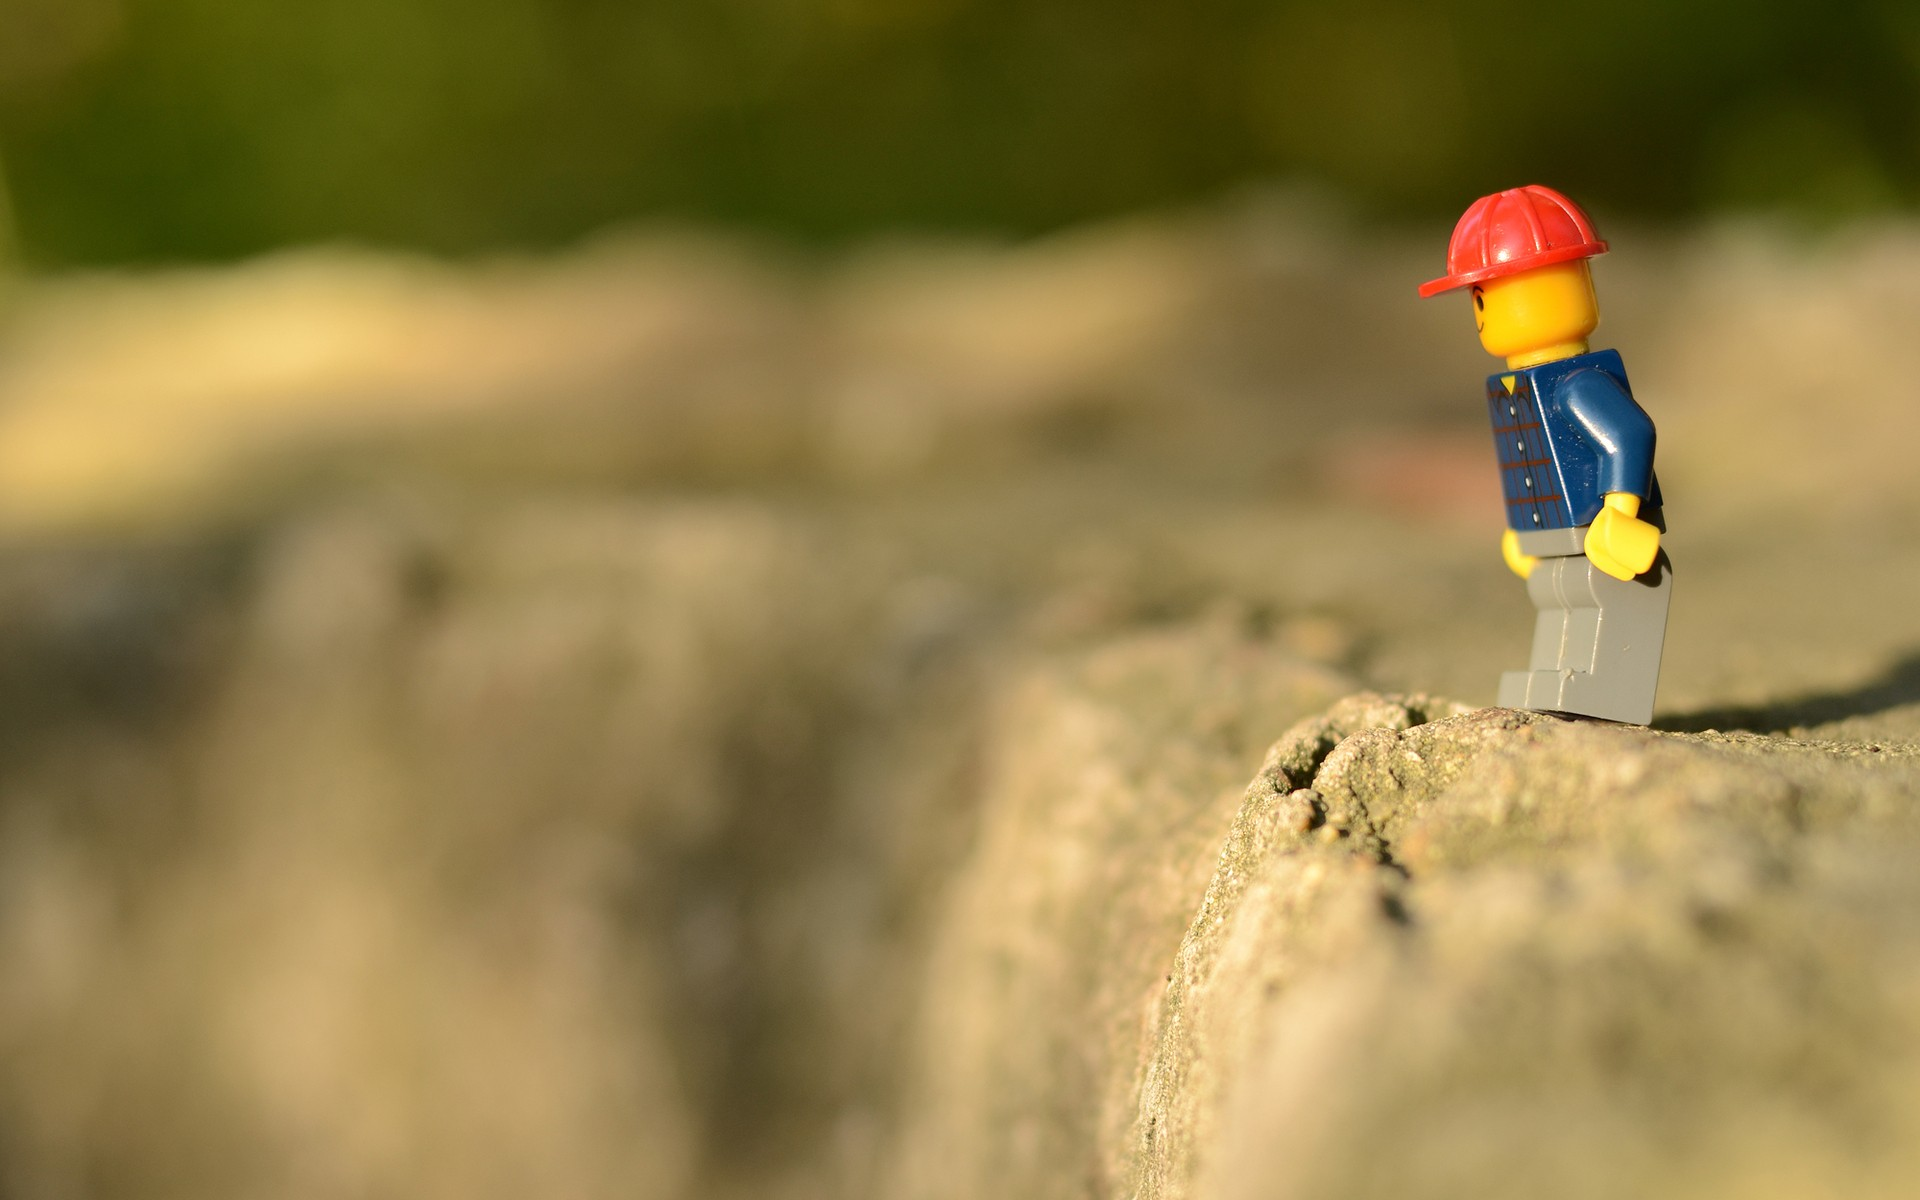 Lego wallpaper 2435 1920x1200 px hdwallsource lego wallpaper 2435 voltagebd Image collections